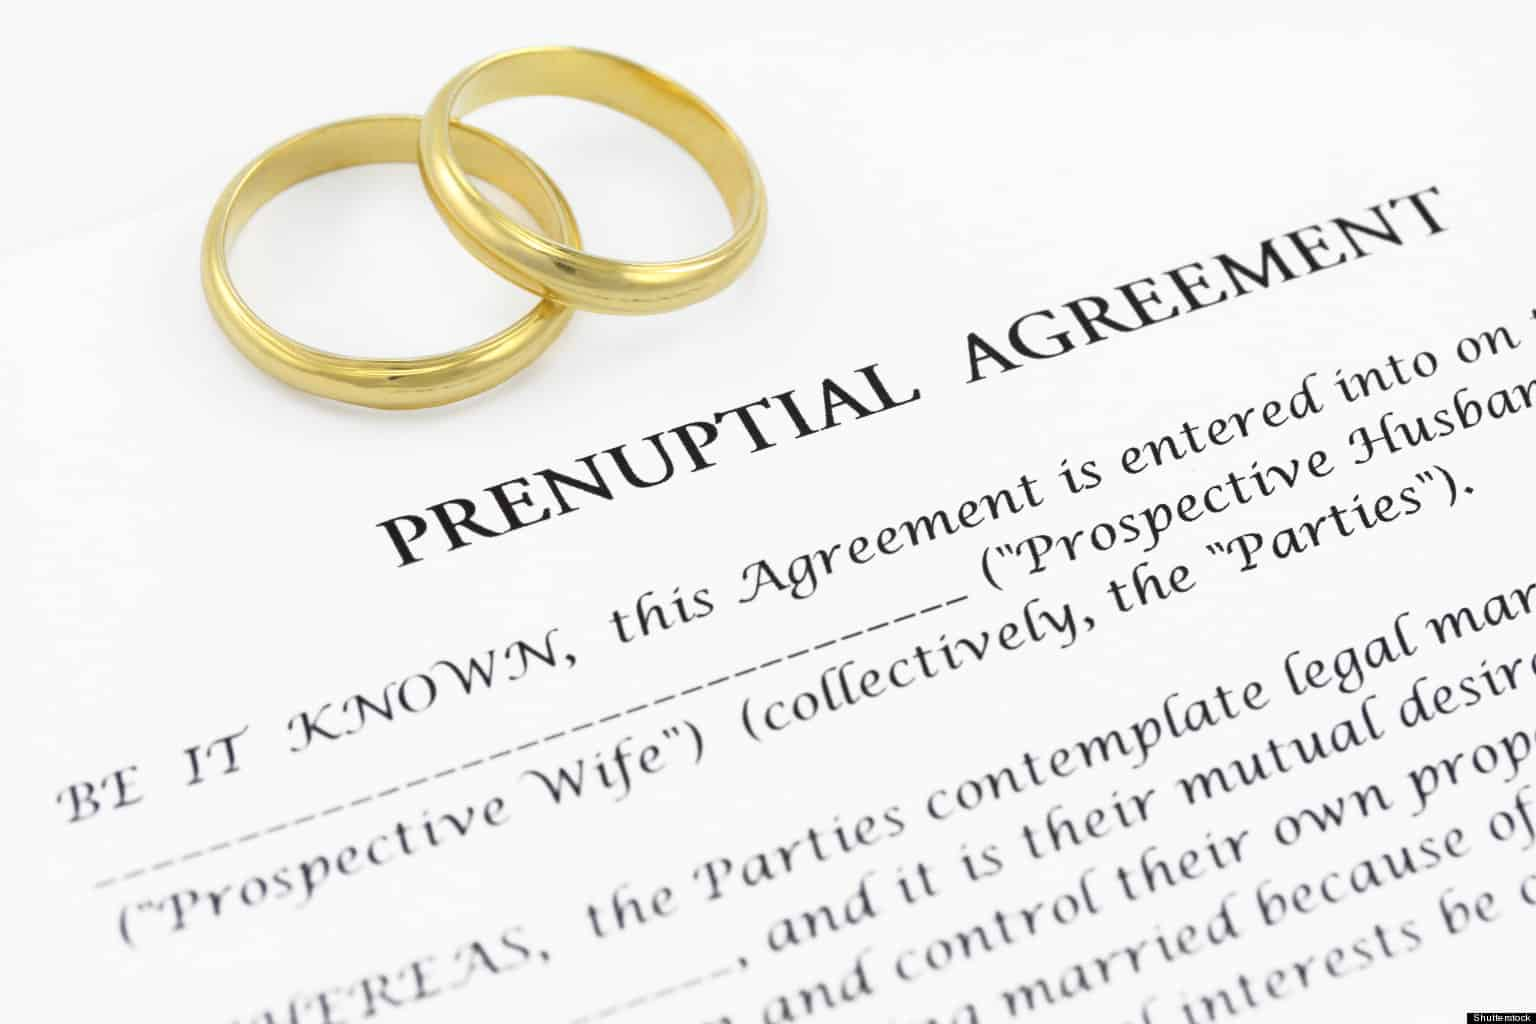 Prenup for the Wealthy